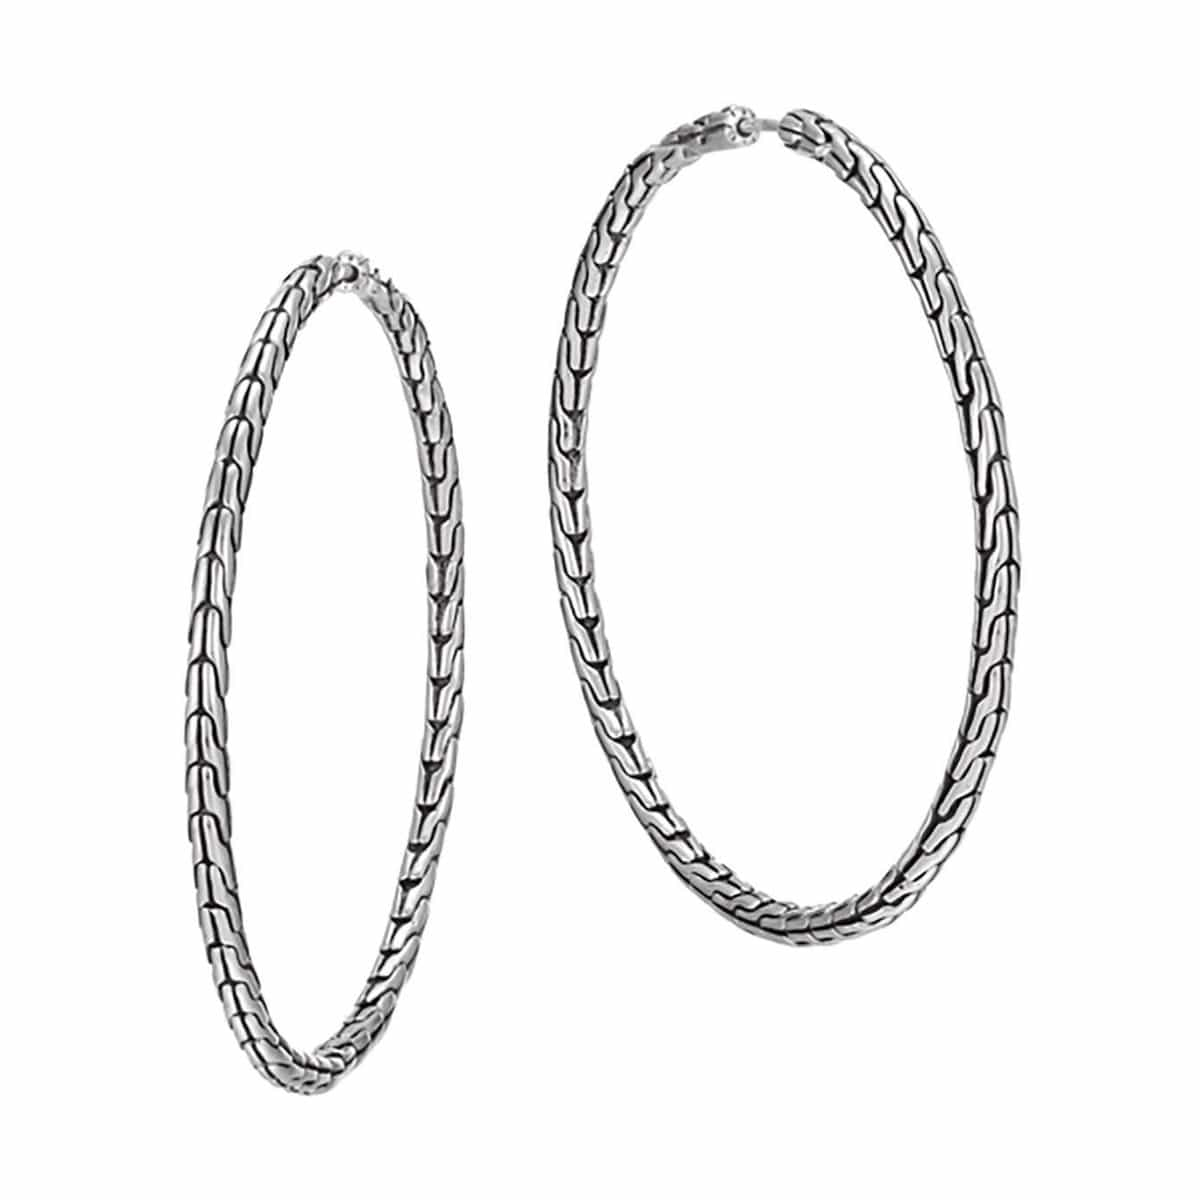 Classic Chain Silver Large Hoop Earrings - EB99254-John Hardy-Renee Taylor Gallery